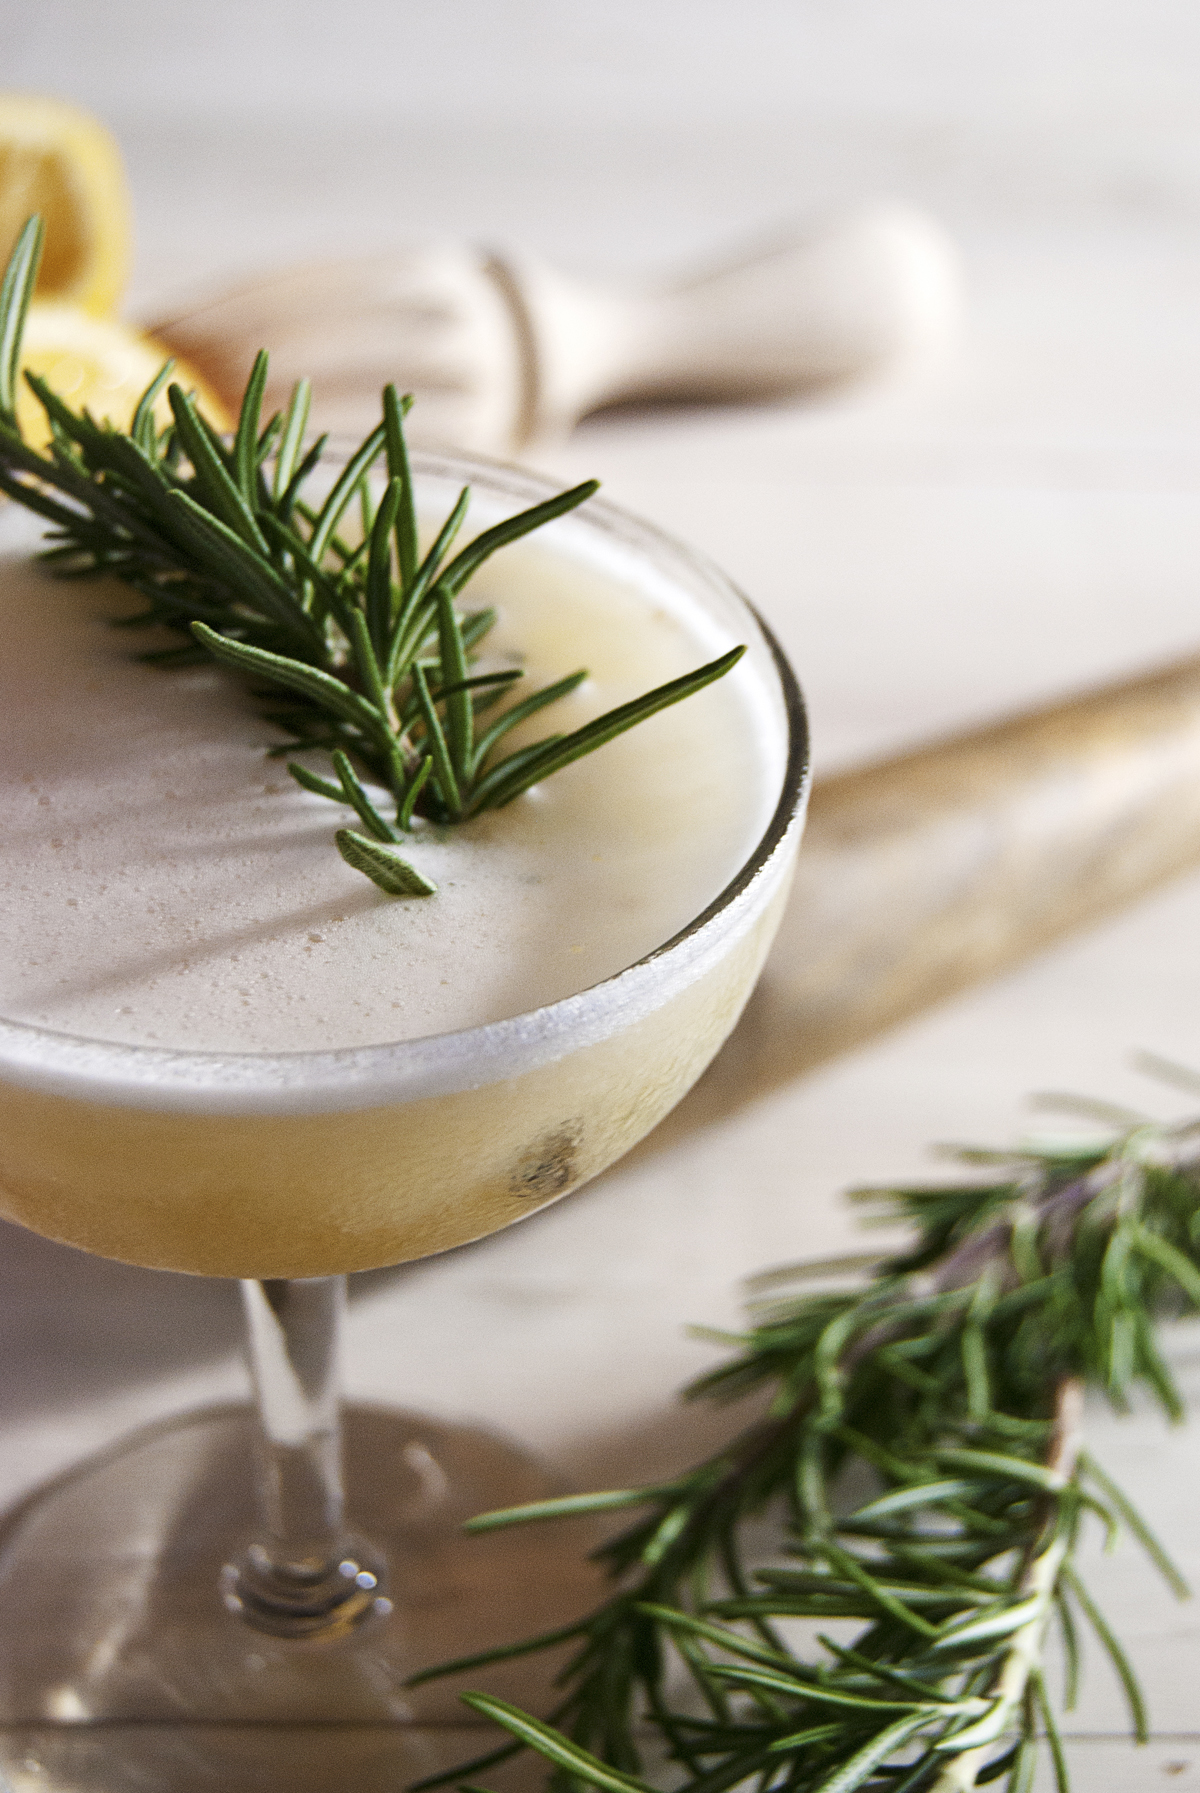 This gorgeous fig cocktail features fig jam paired with rosemary and pisco liquor.